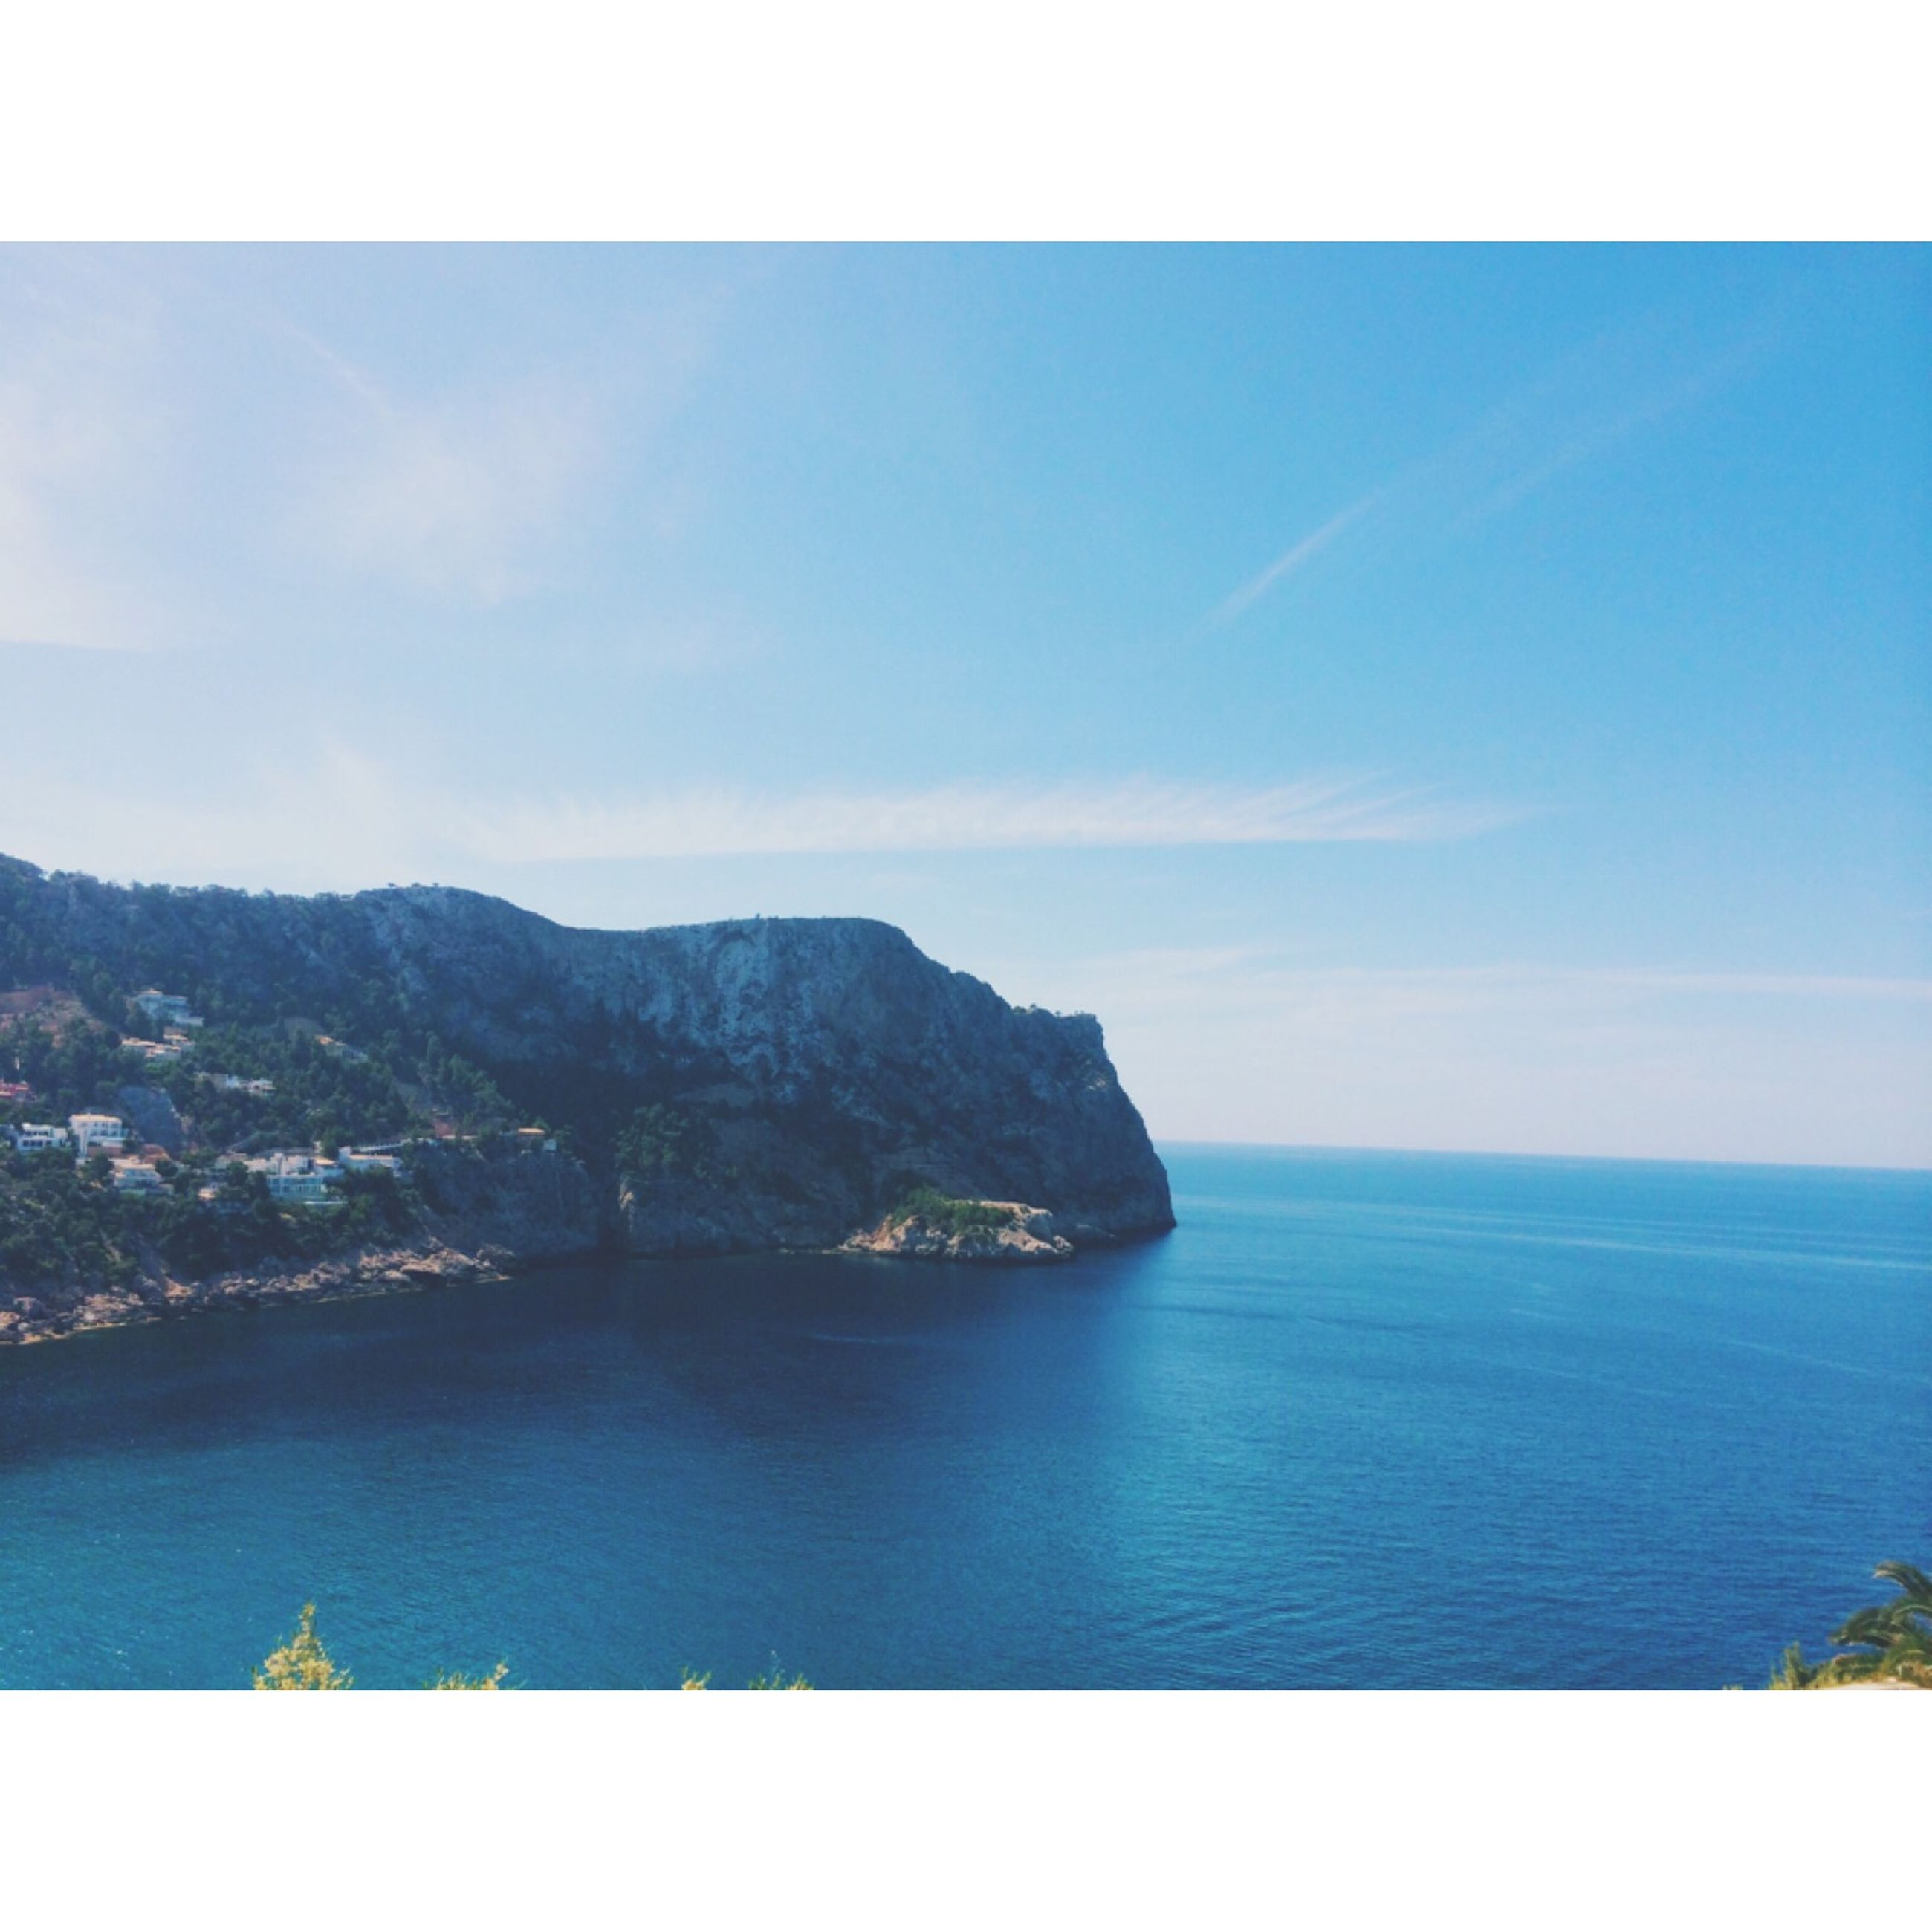 transfer print, water, sea, auto post production filter, tranquil scene, scenics, tranquility, sky, beauty in nature, blue, mountain, horizon over water, nature, waterfront, idyllic, coastline, outdoors, mountain range, ocean, day